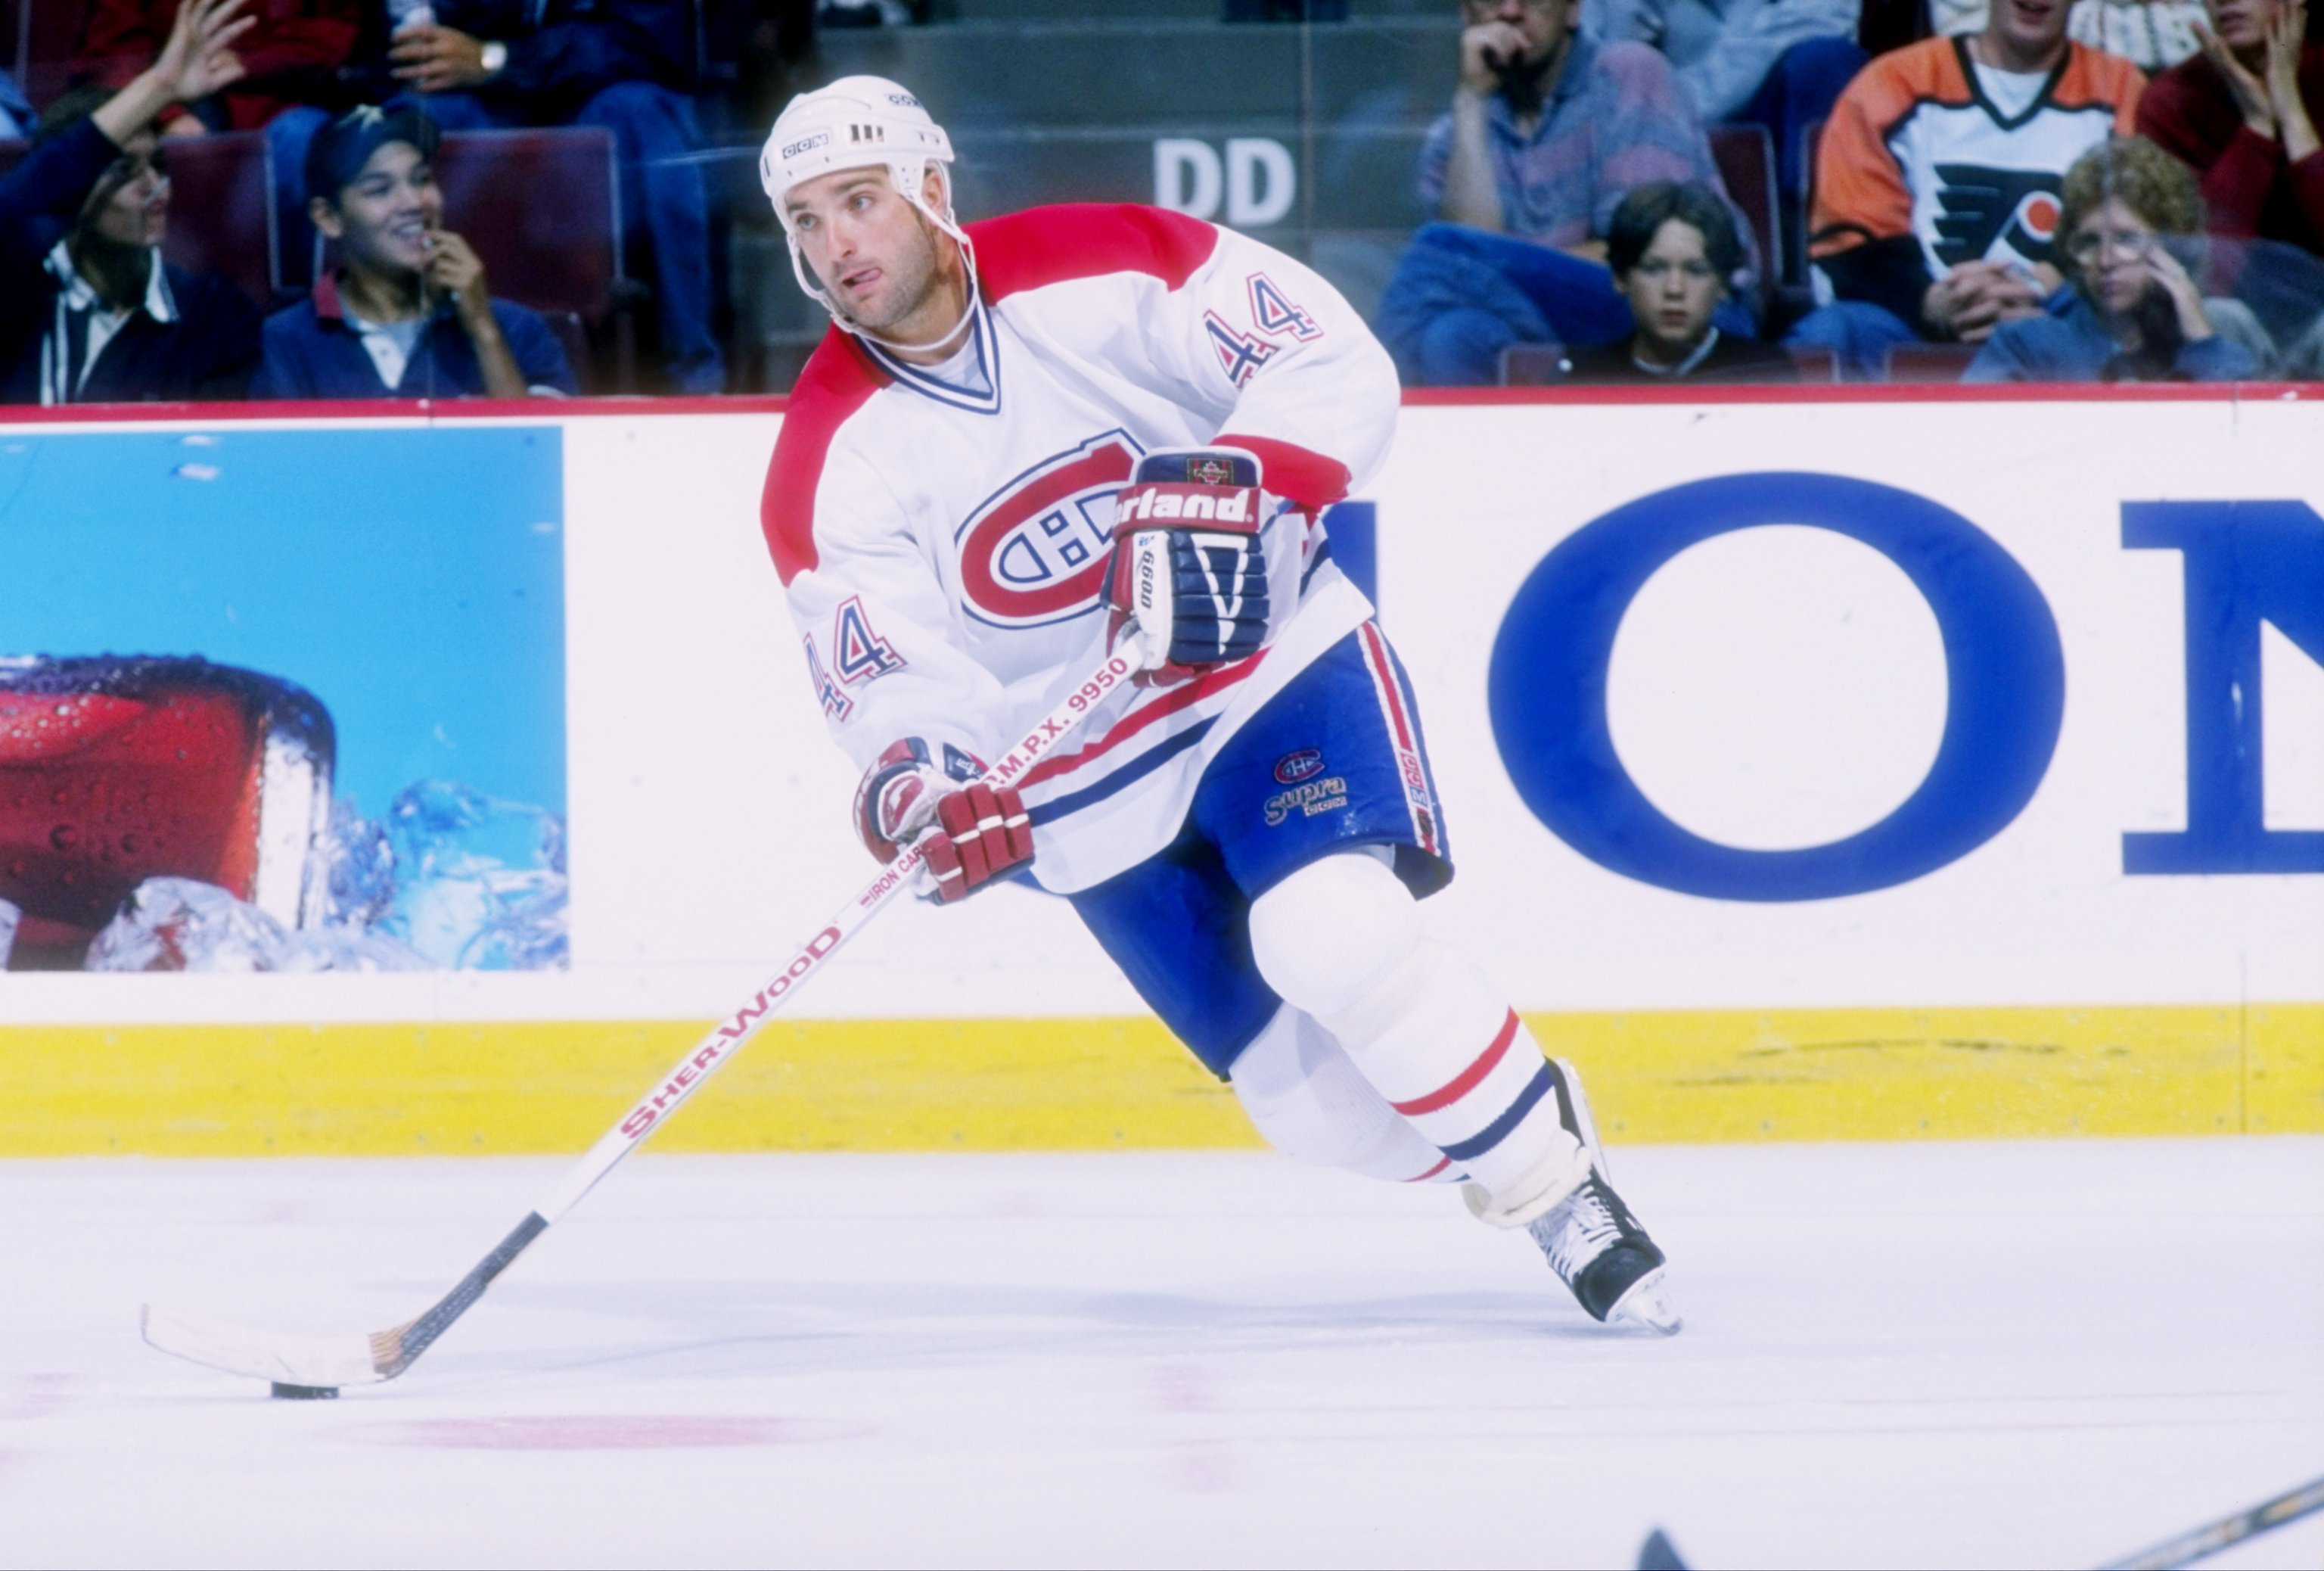 17 Sep 1997:  Rightwinger Stephane Richer of the Montreal Canadiens  in action during a game against the Philadelphia Flyers at the Molson Center in Montreal, Canada.  The Canadiens won the game 5-4. Mandatory Credit: Robert Laberge  /Allsport